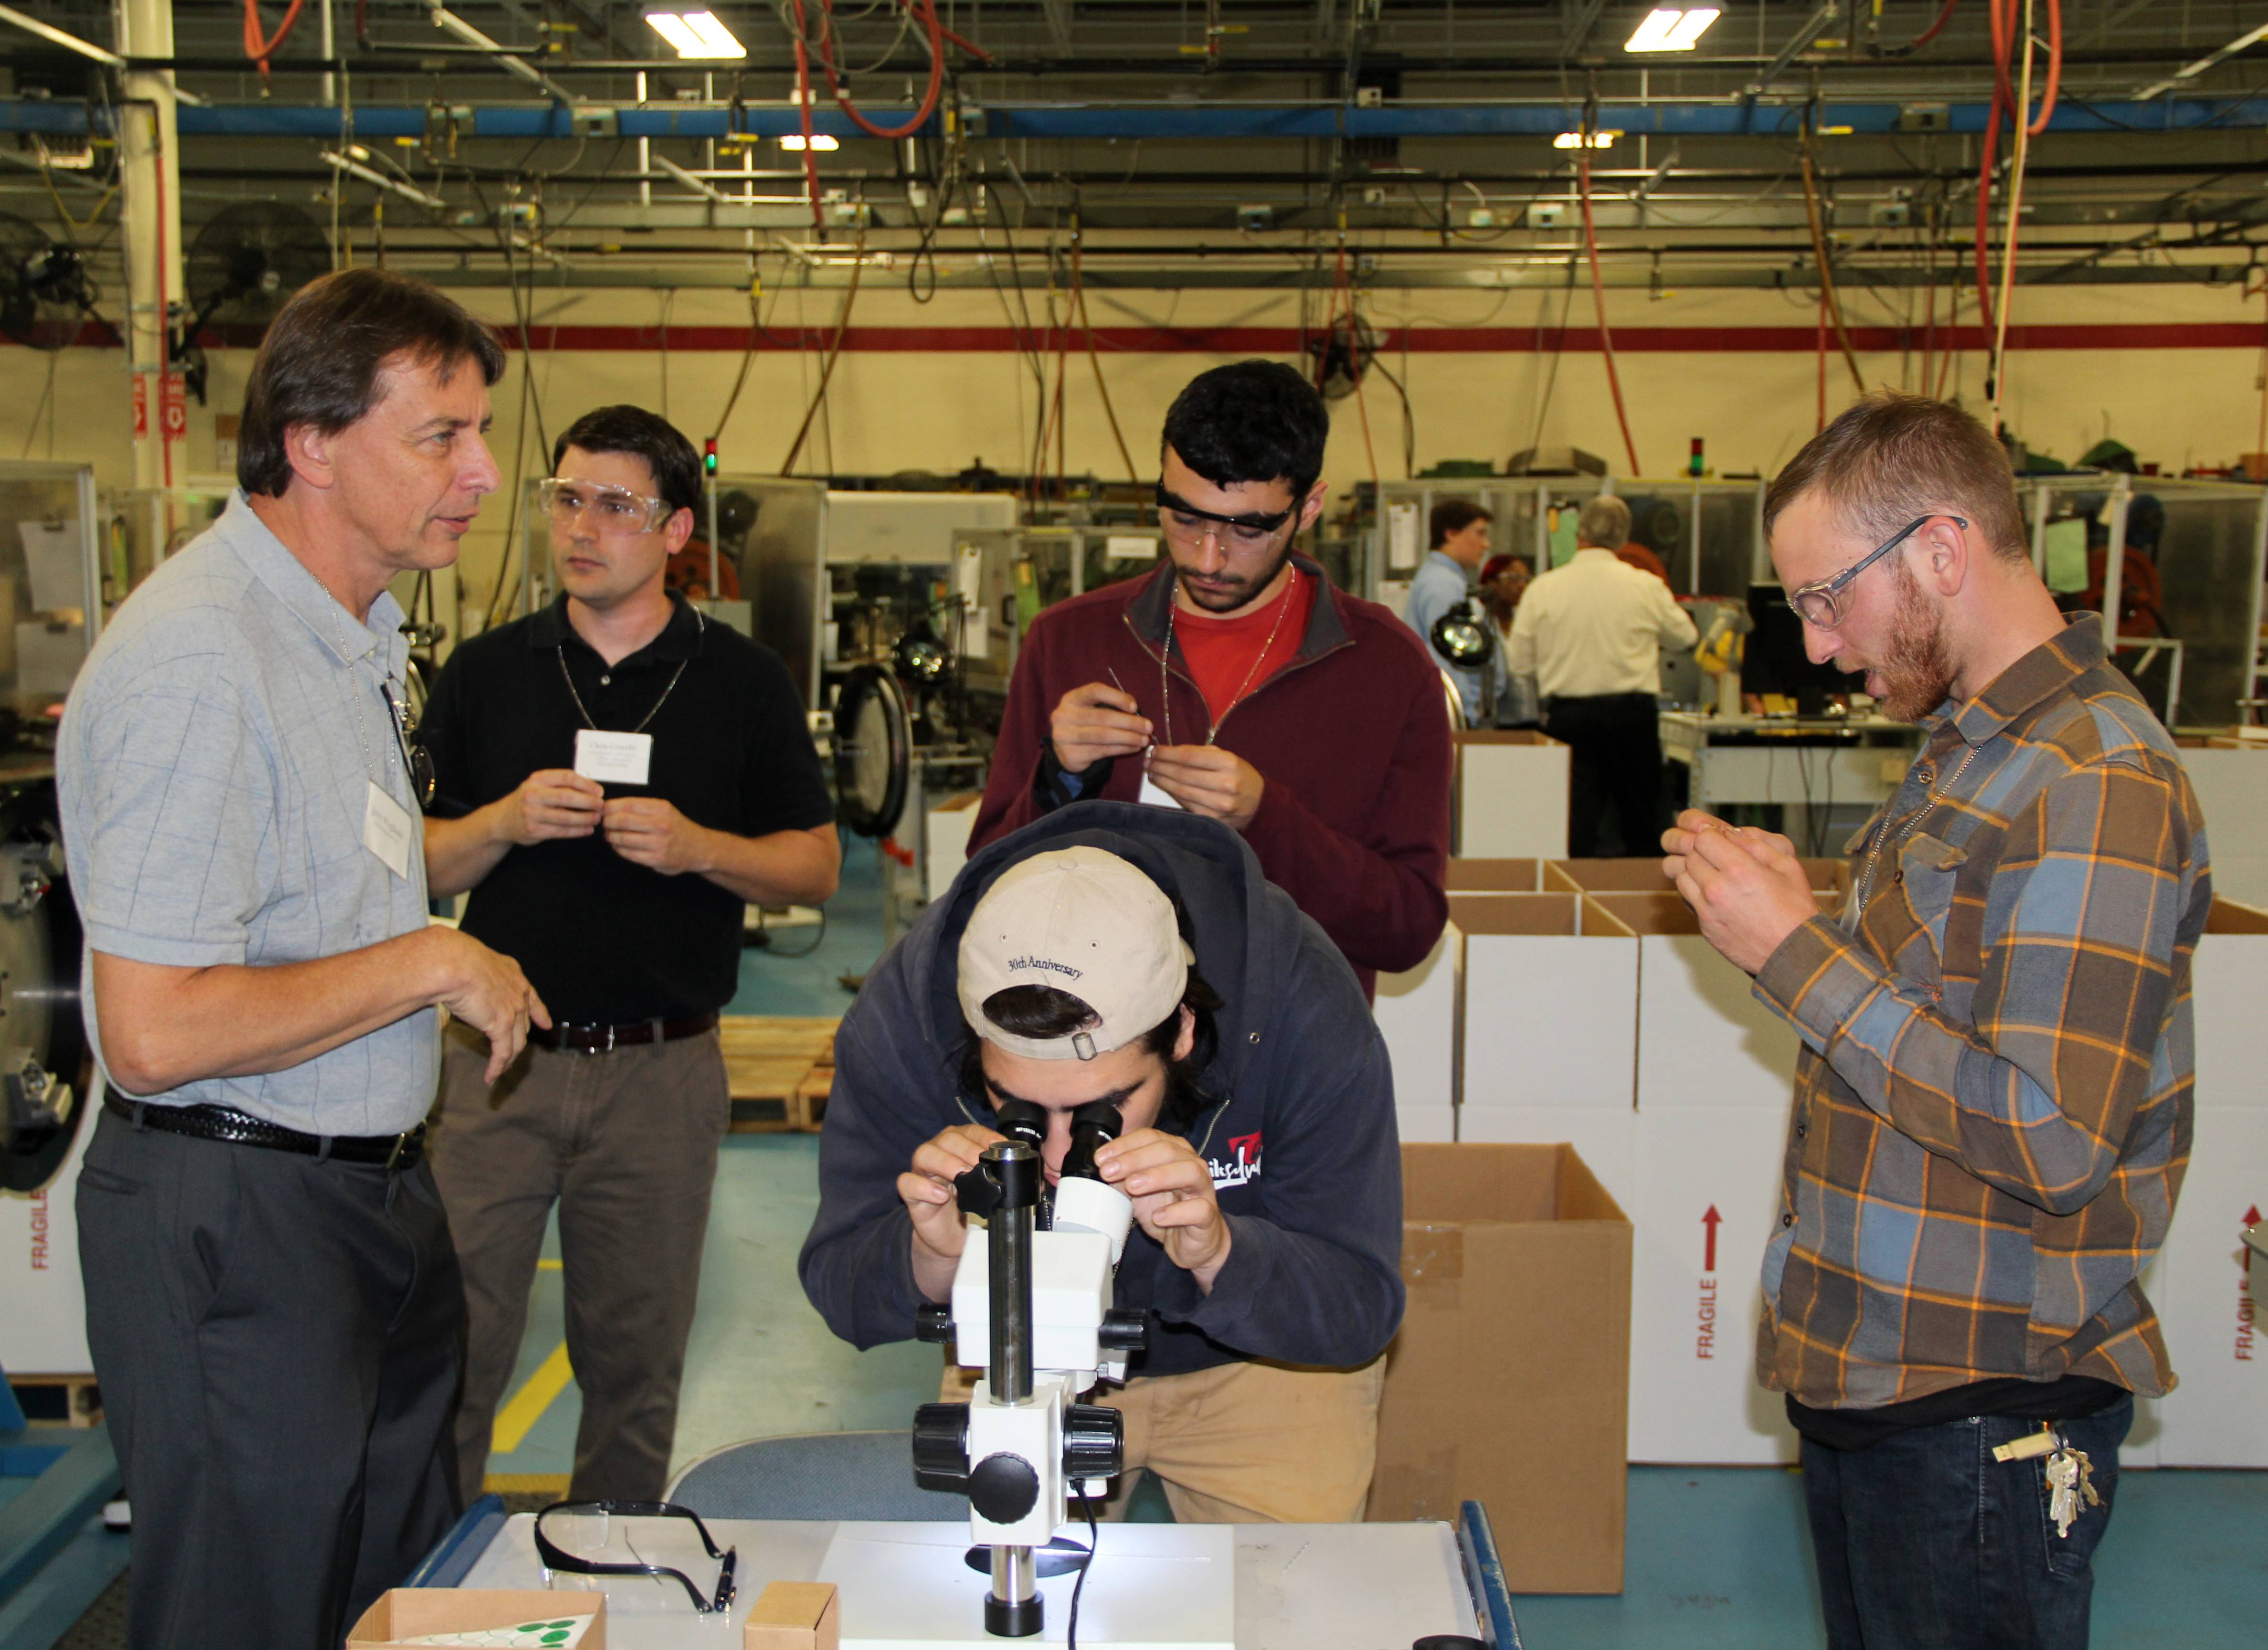 Electronic Contact Pin Manufacturer Draws Interest on Manufacturing Day